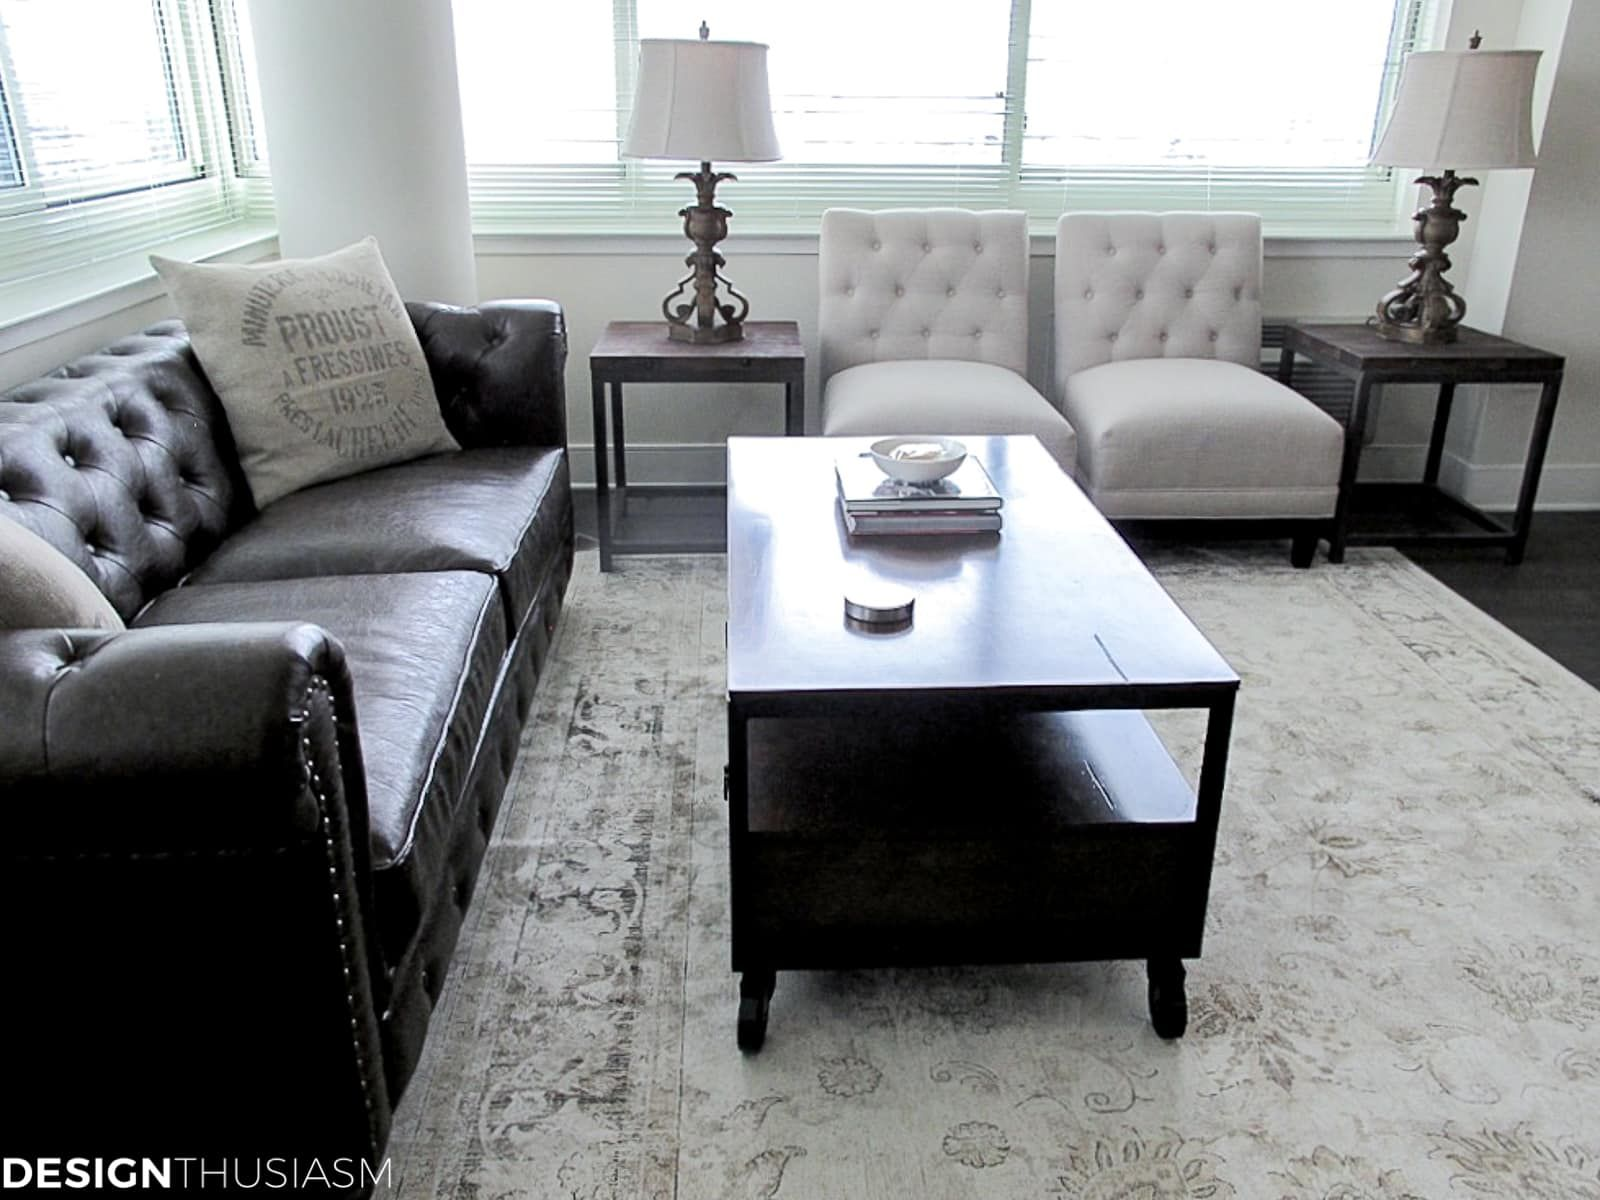 Bachelor Pad Ideas: Decorating a Young Man's Apartment on ...